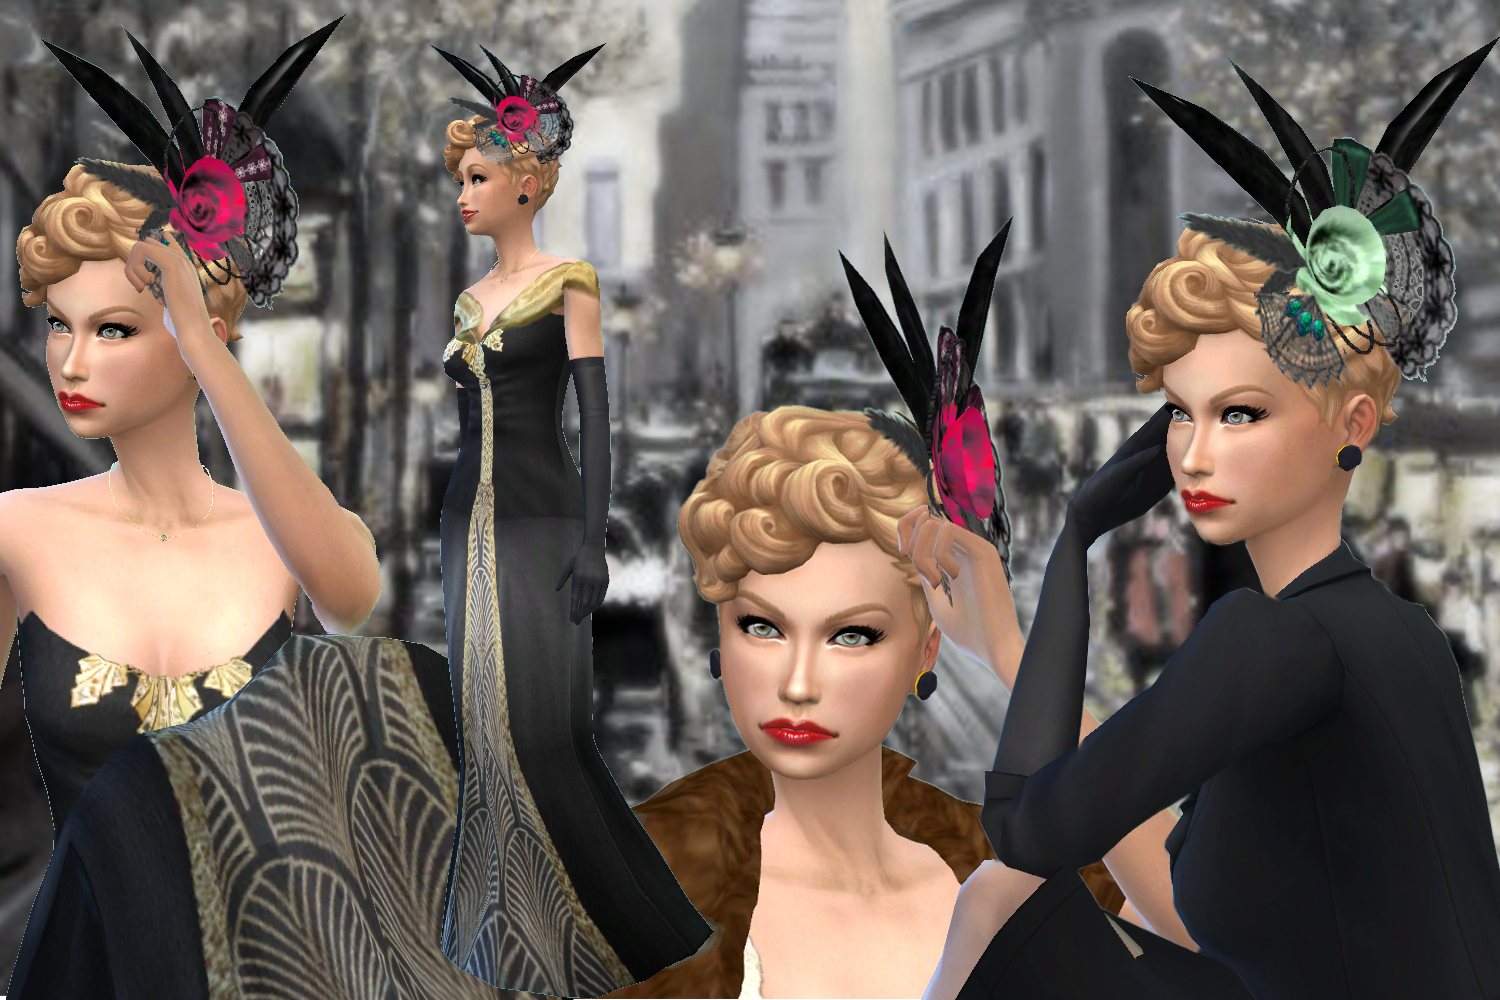 The sims 4 hair accessories - Here Is A Fascinator A Angled Tiny Hat Popular In The Early 1900s Perfect For An Edwardian Or Belle Epoch Look